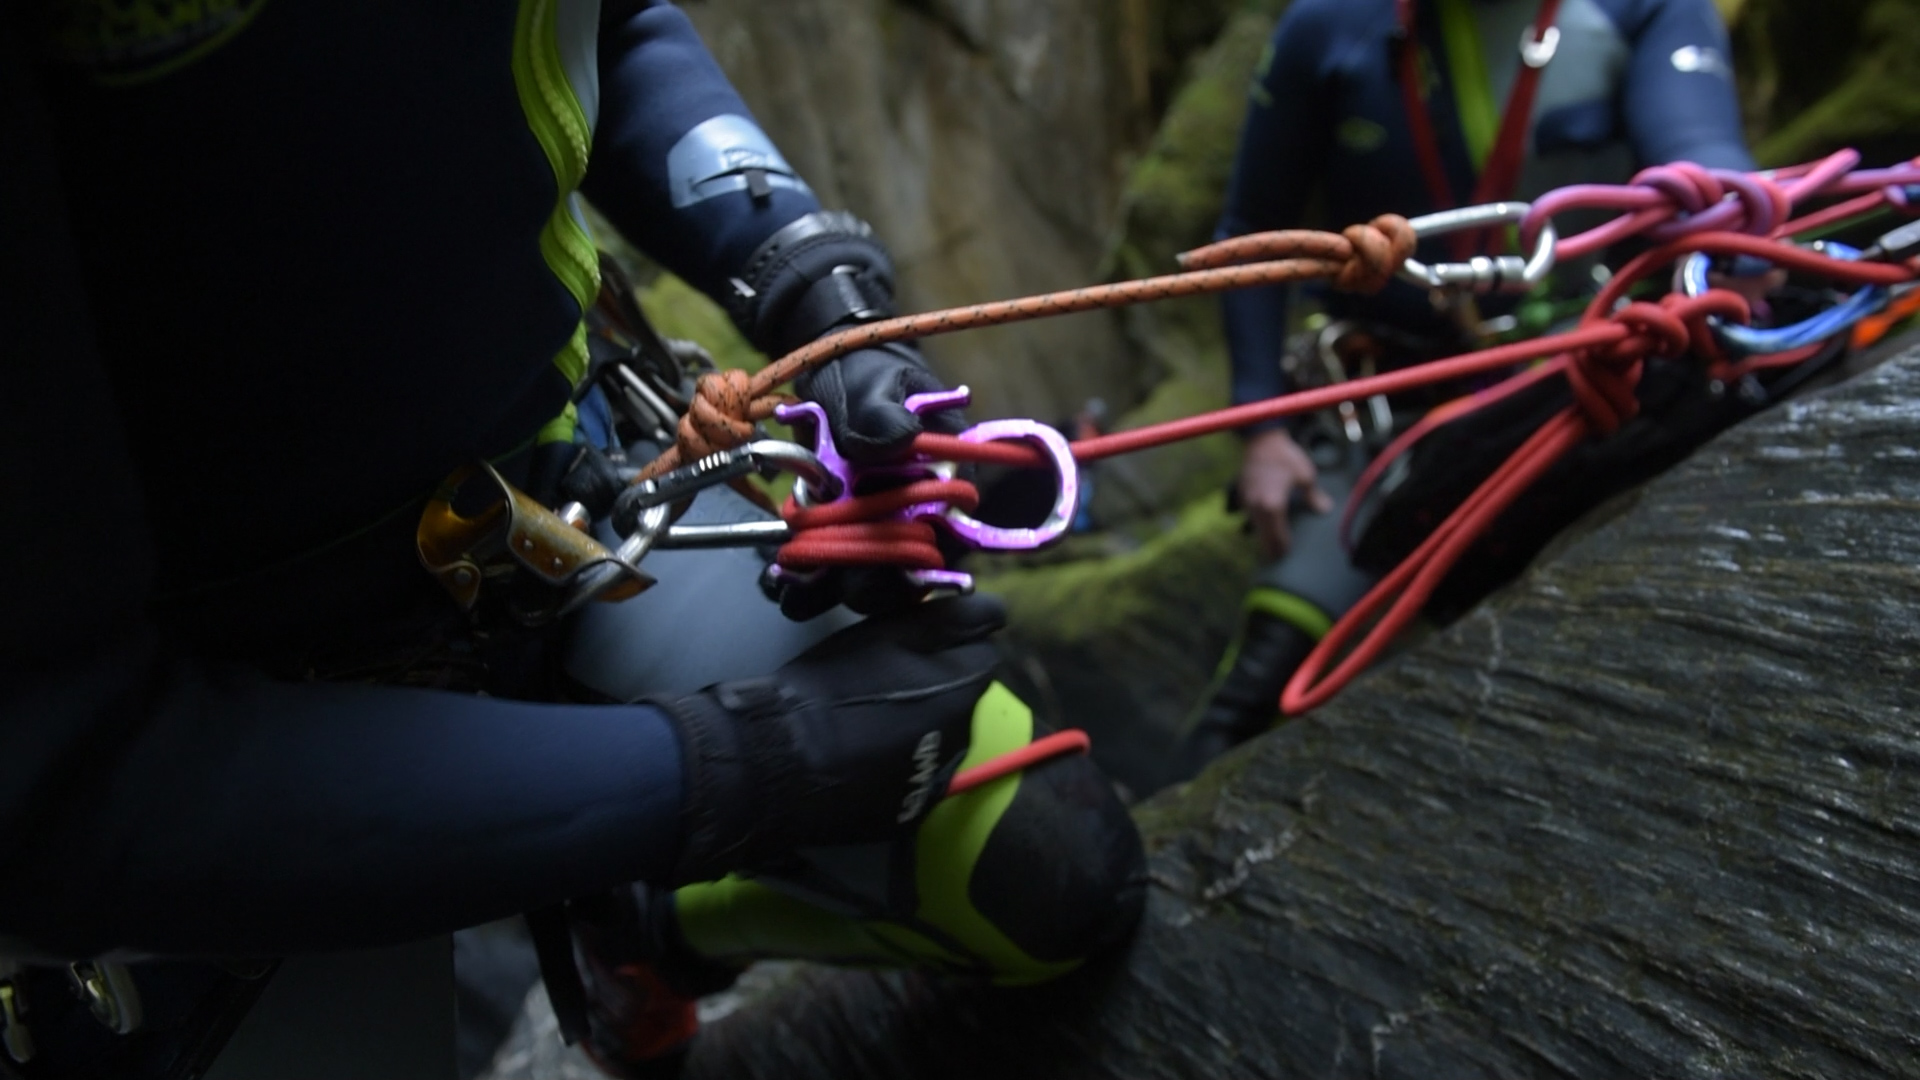 Canyoning descenders friction modes